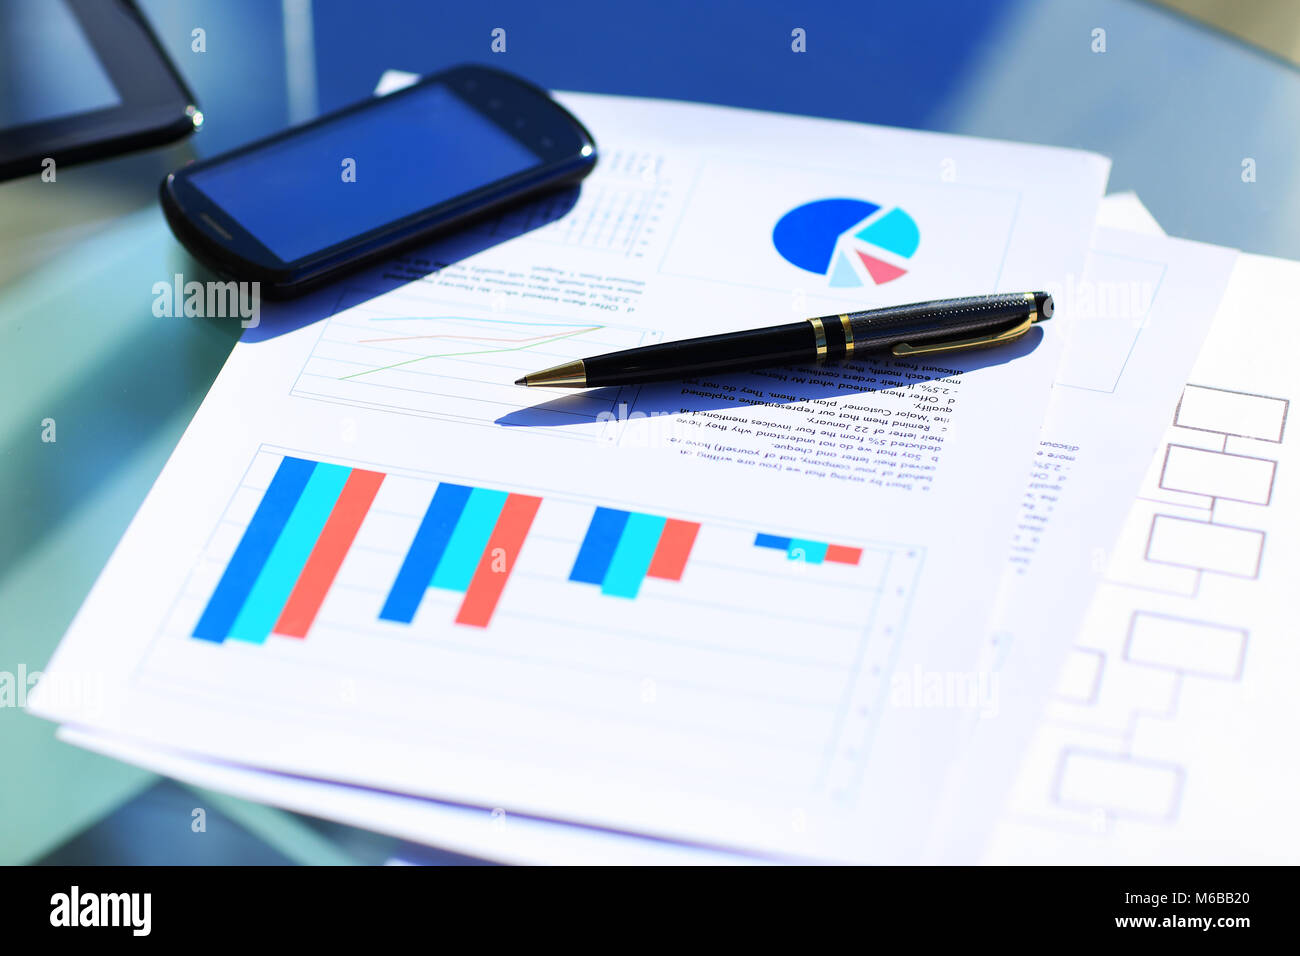 Financial charts on the table - Stock Image